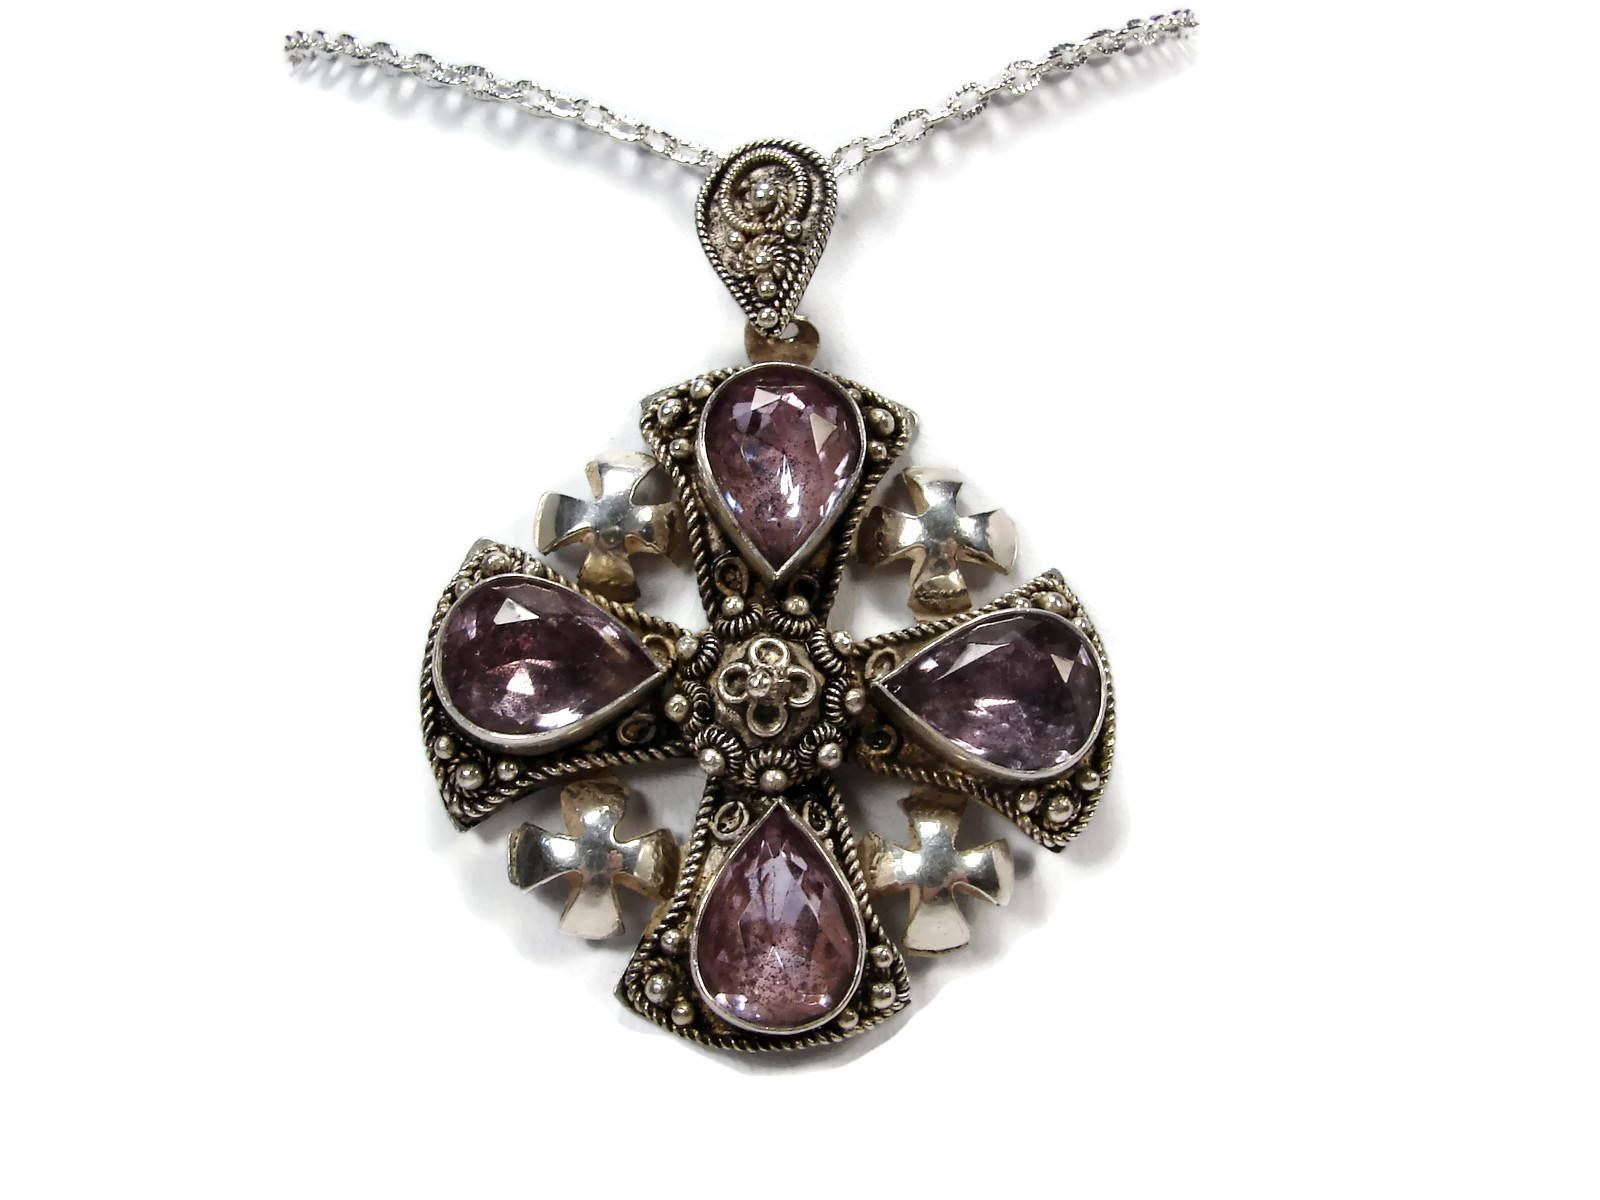 jewelry lane item pic accessories jerusalem in vintage four silver f pendant cross ruby made pin